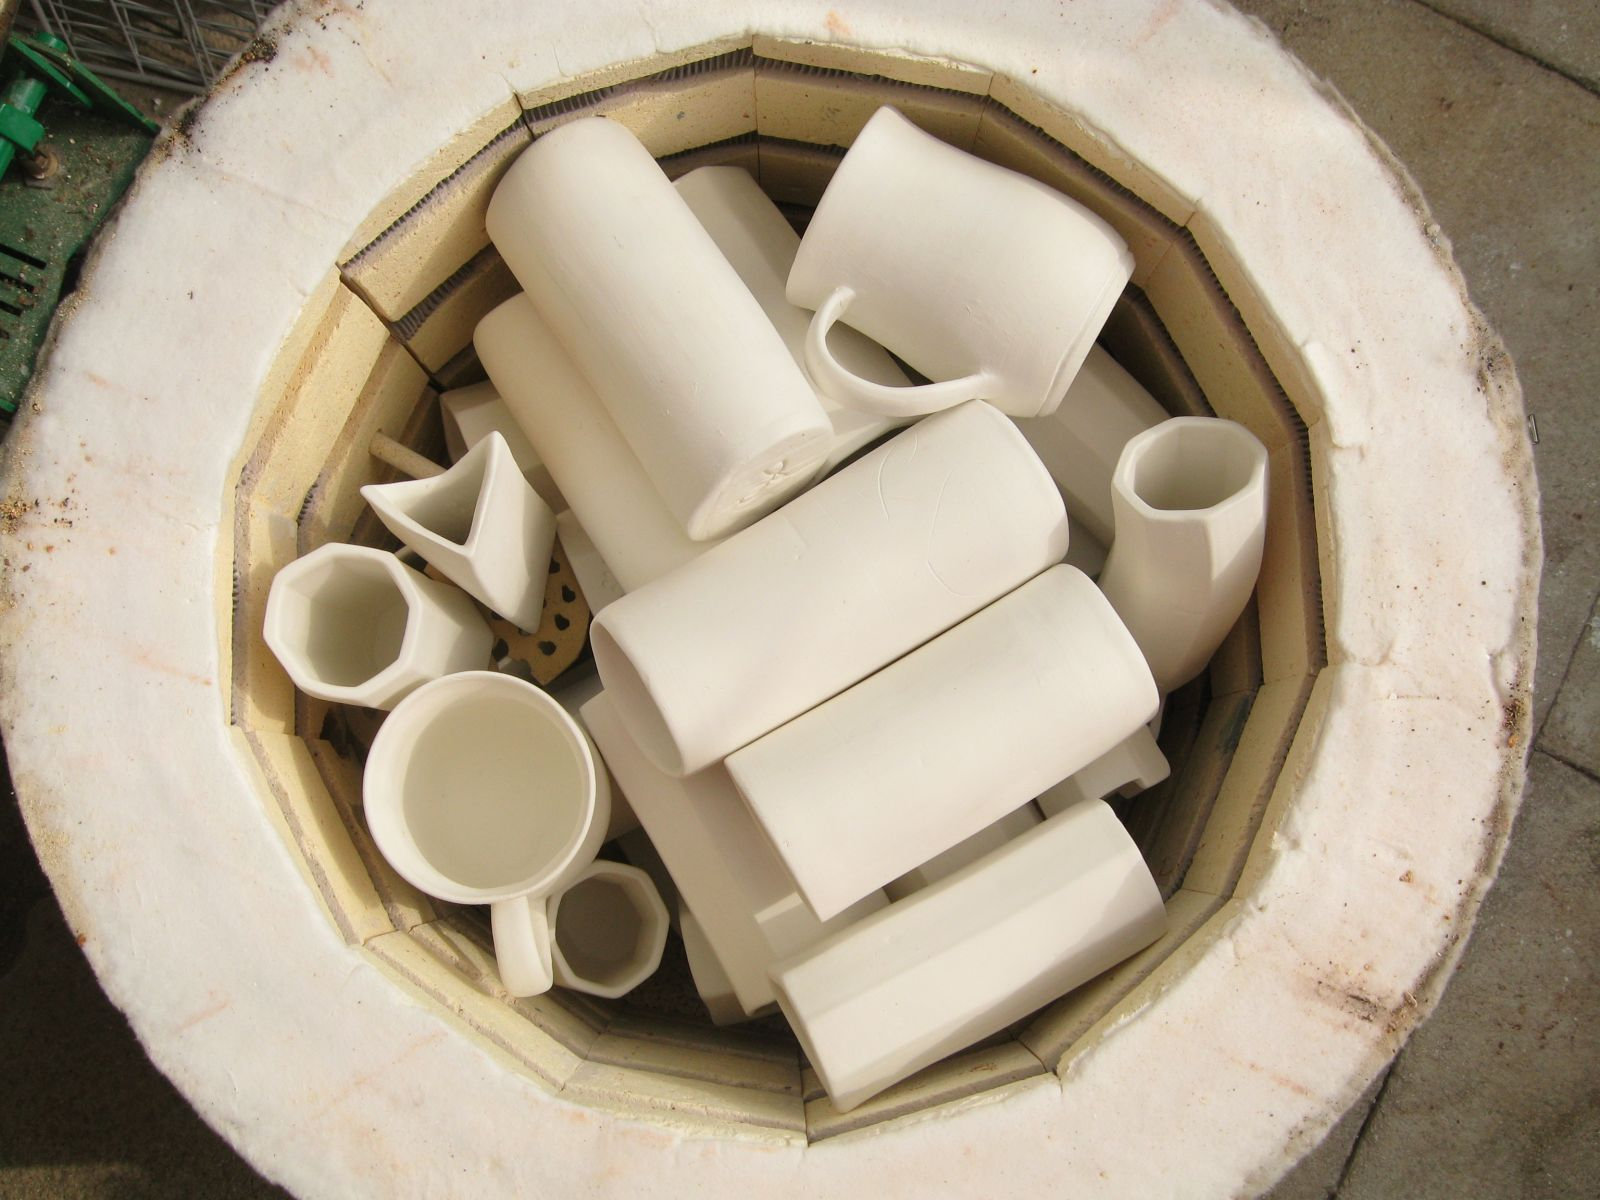 Tumble-stacked extruded pots